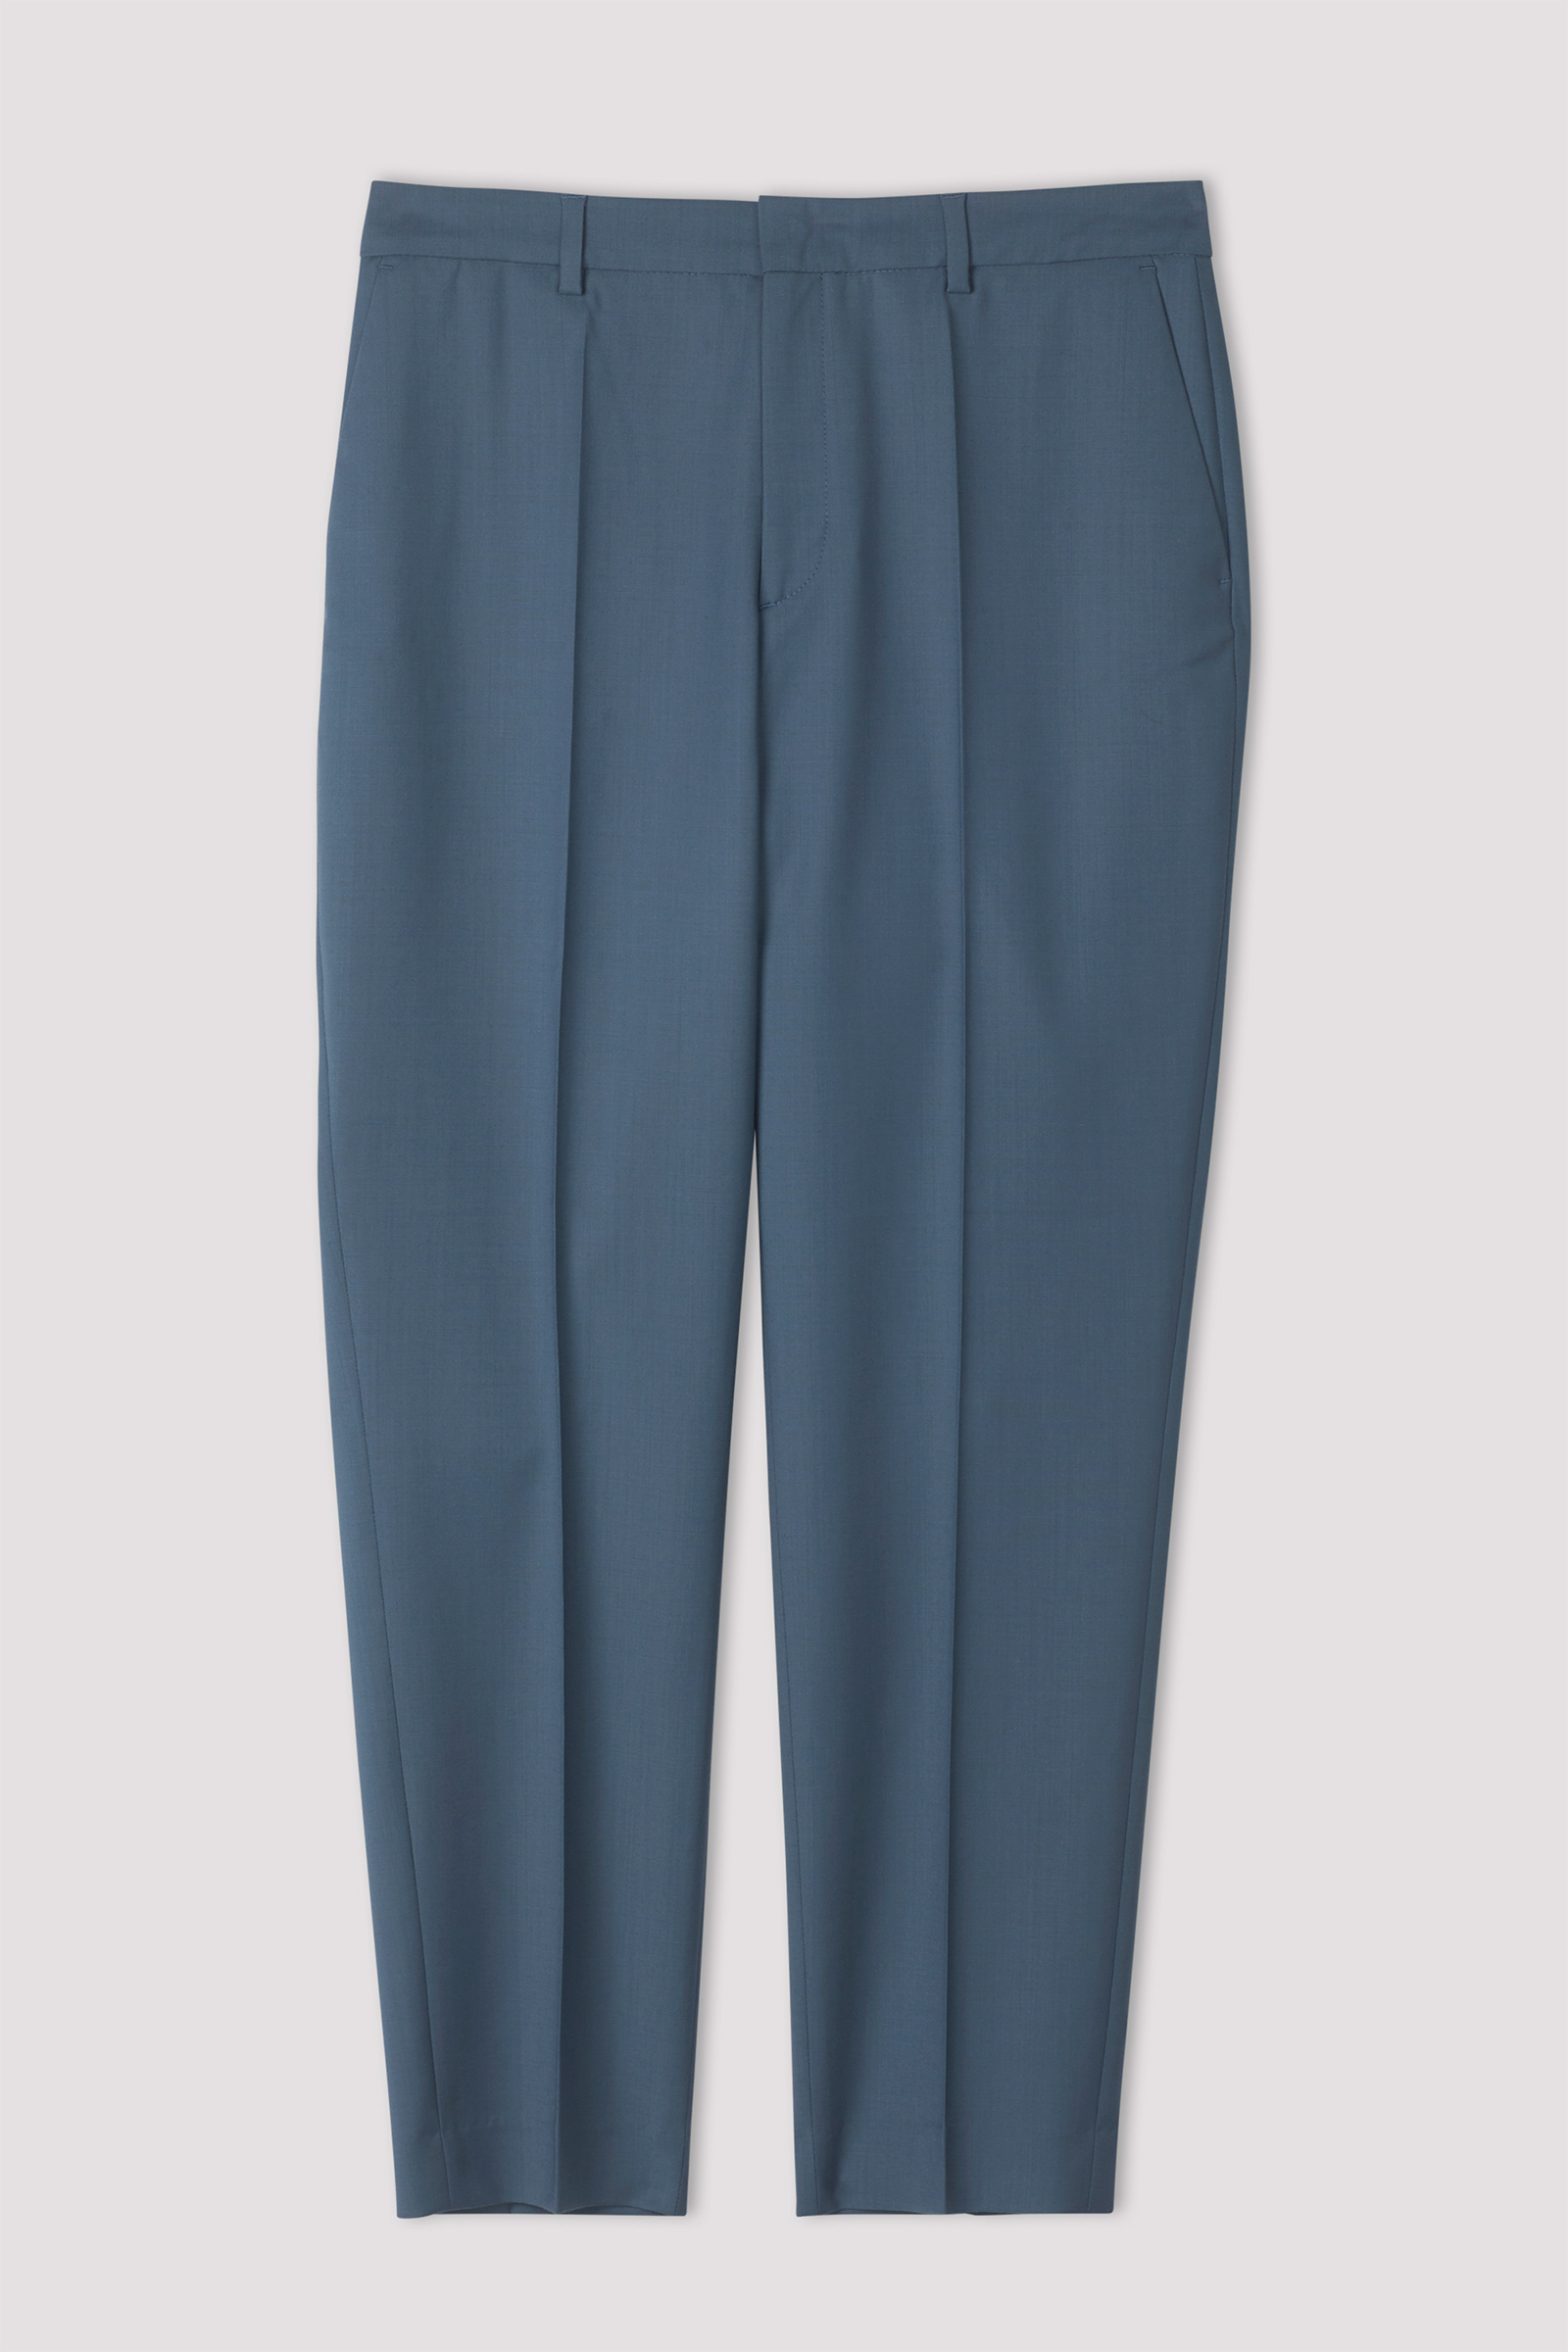 Emma Cropped Cool Wool Trouser Blue Grey